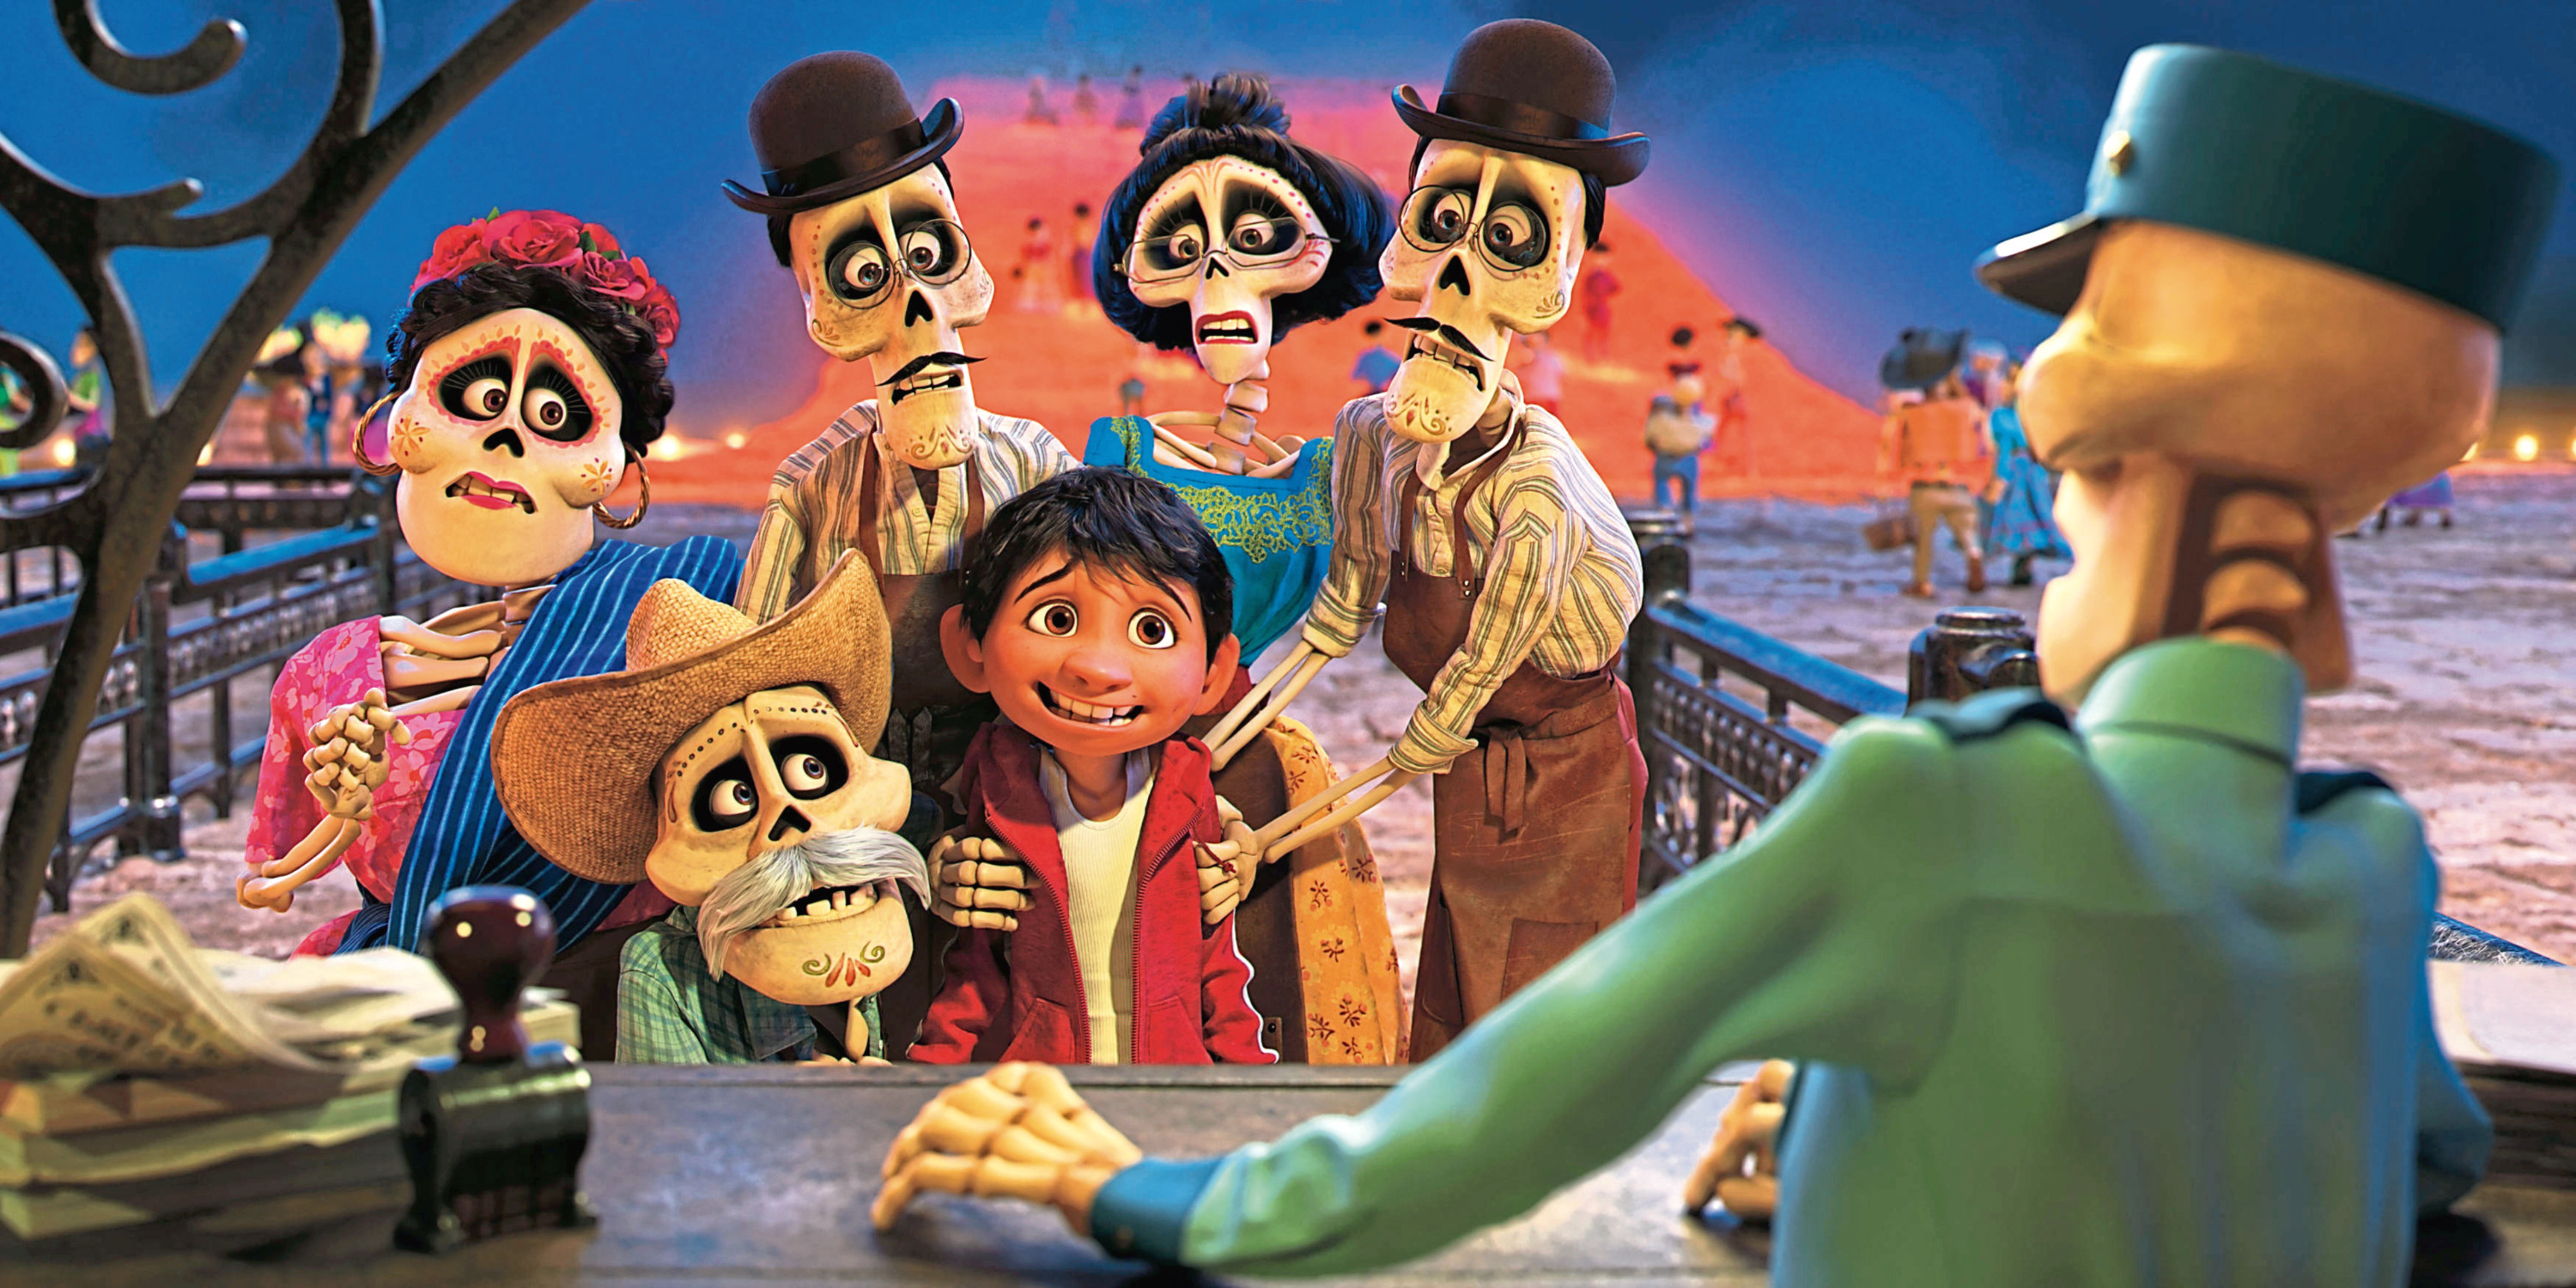 The festival will include a special screening of the hit film, Coco